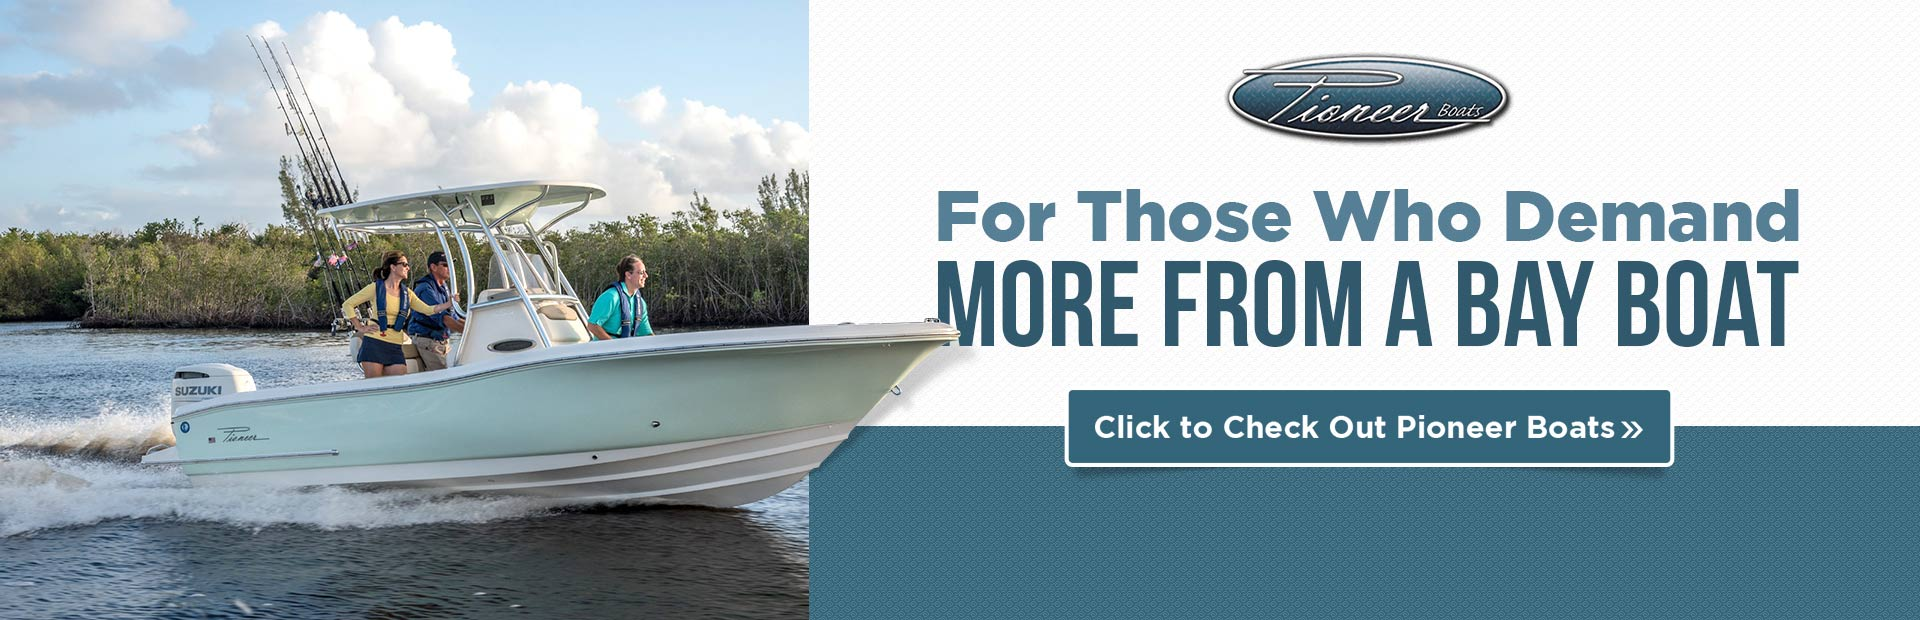 Click here to browse Pioneer boats.